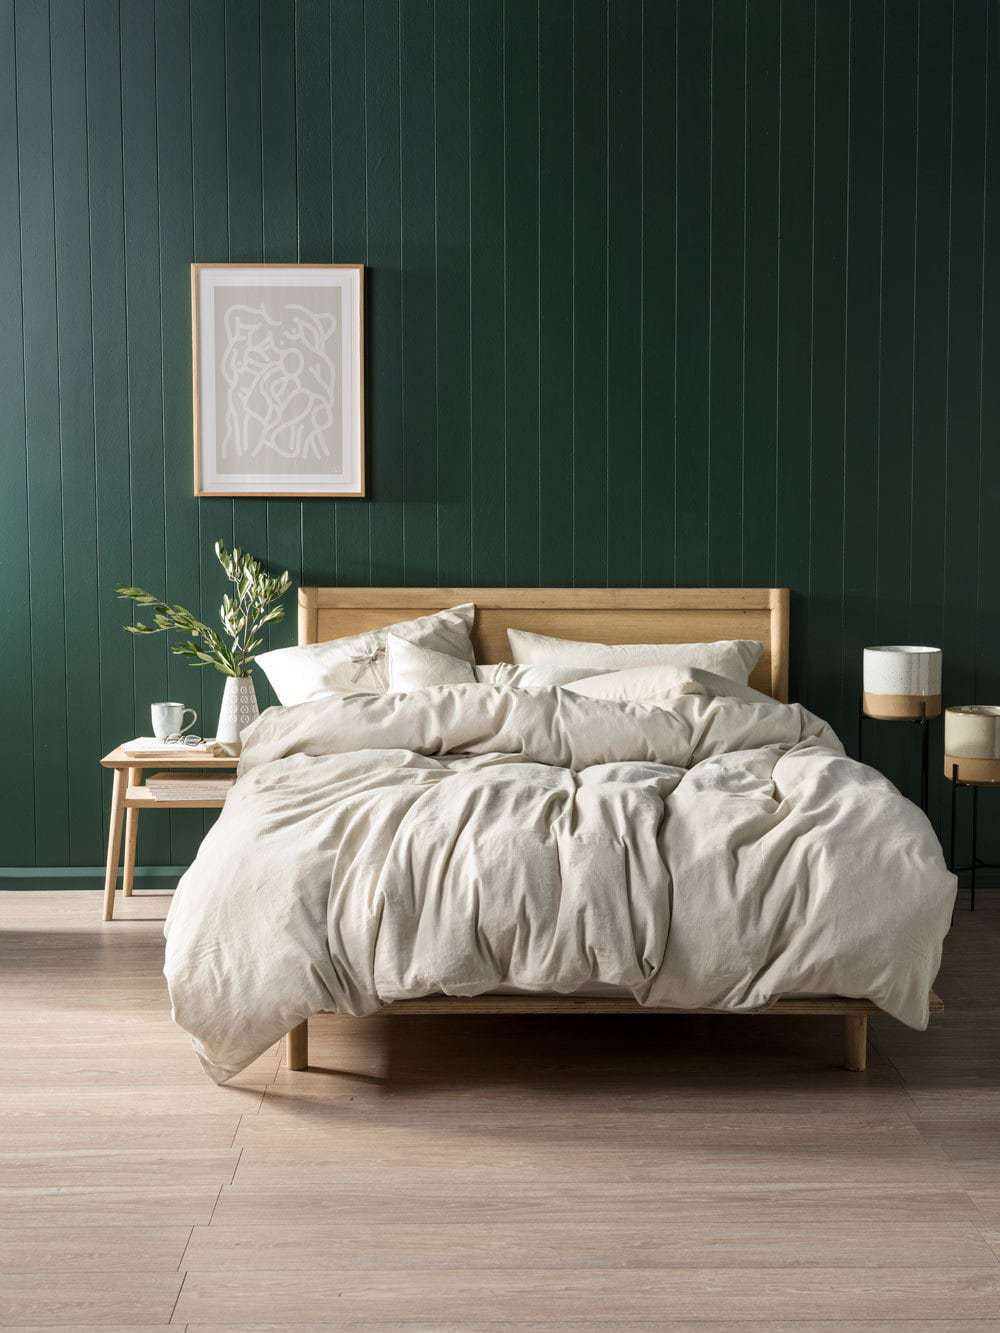 8 Of The Best Calming Bedroom Colour Schemes You Need To Try throughout measurements 1000 X 1333